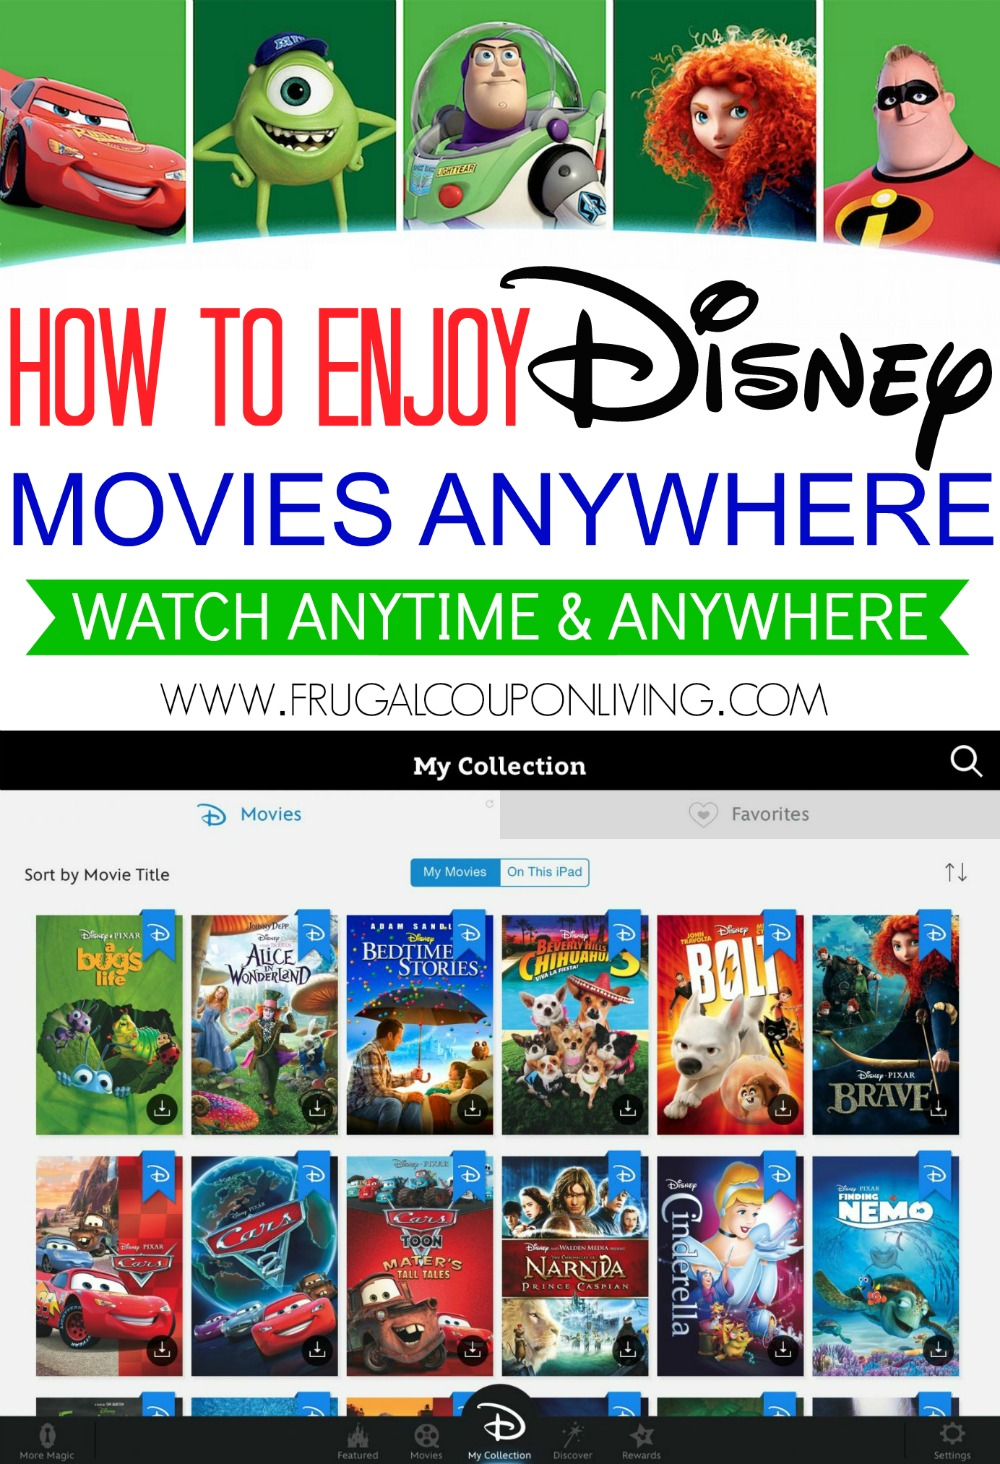 Disney-Movies-Anywhere-frugal-coupon-living